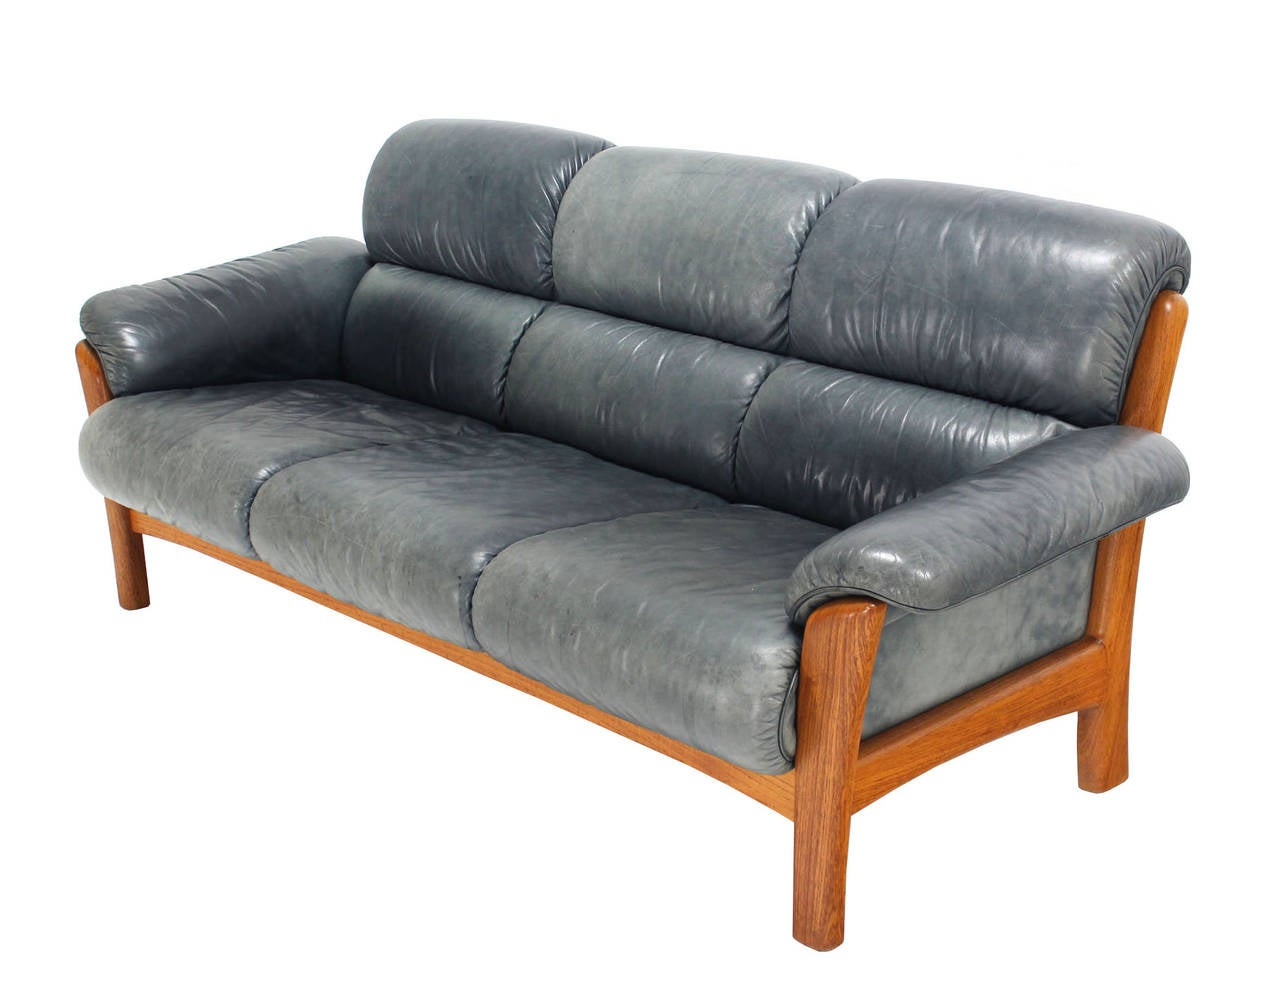 Danish Modern Leather And Teak Living Room Set Sofa And Loveseat At 1stdibs